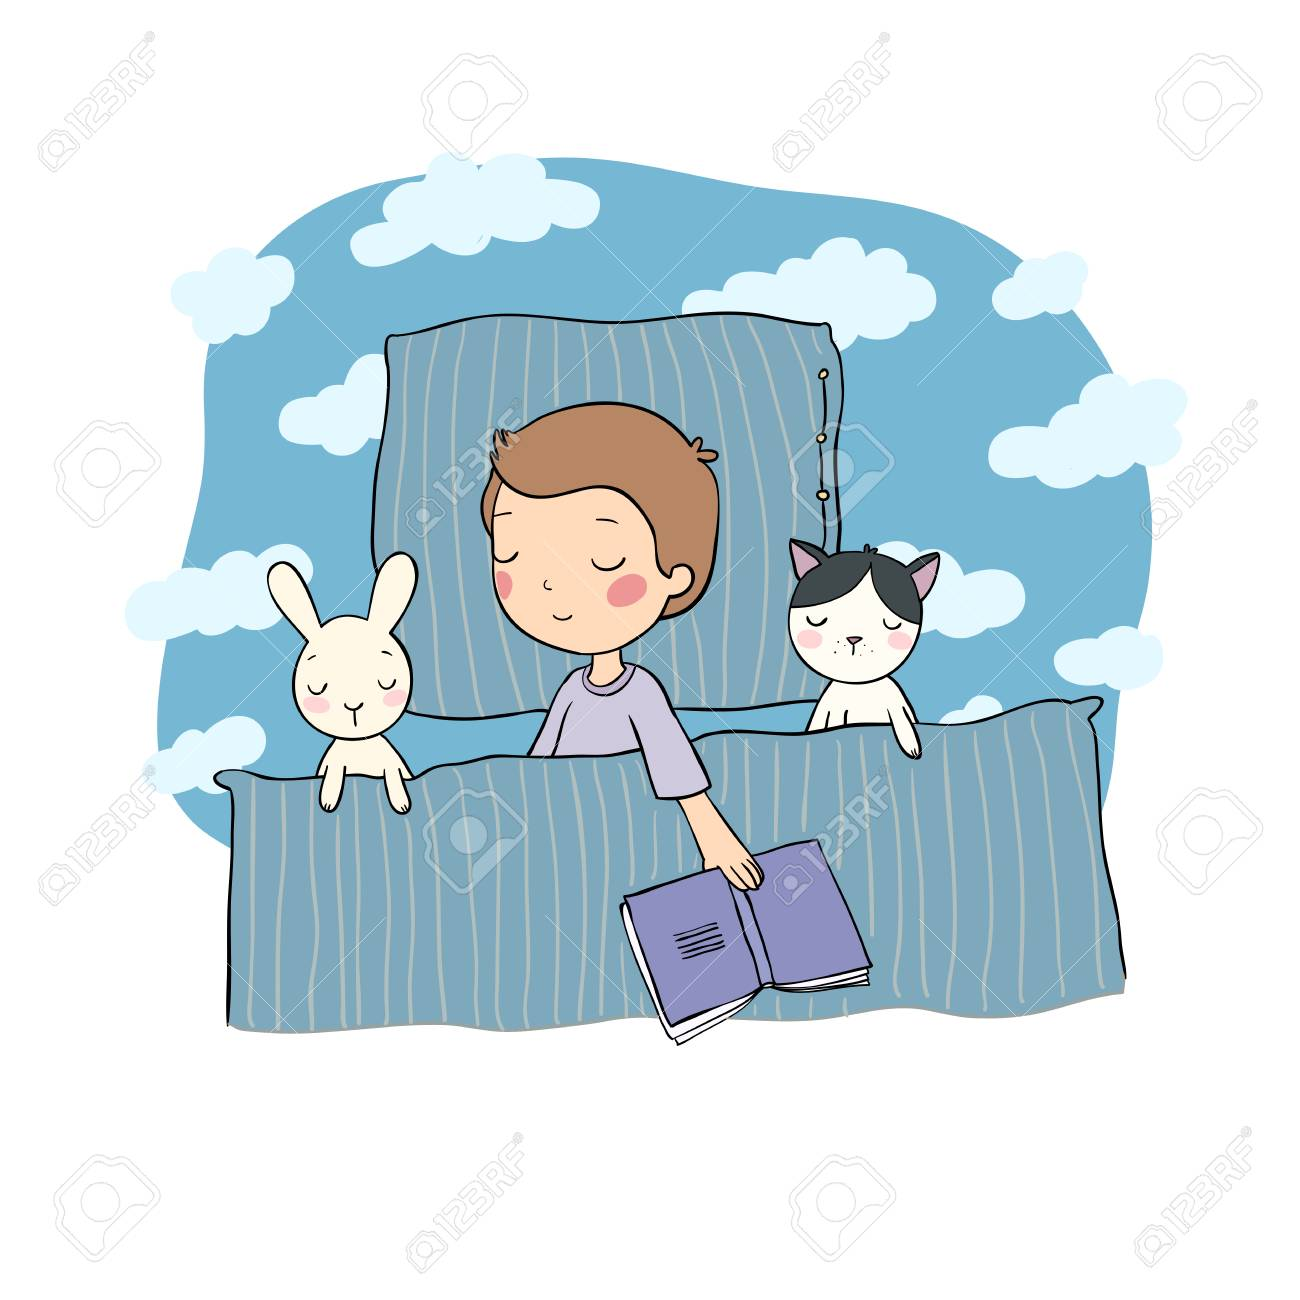 Sleeping boy. Baby in bed with toys. Time to sleep. Good night. Vector - 118916204